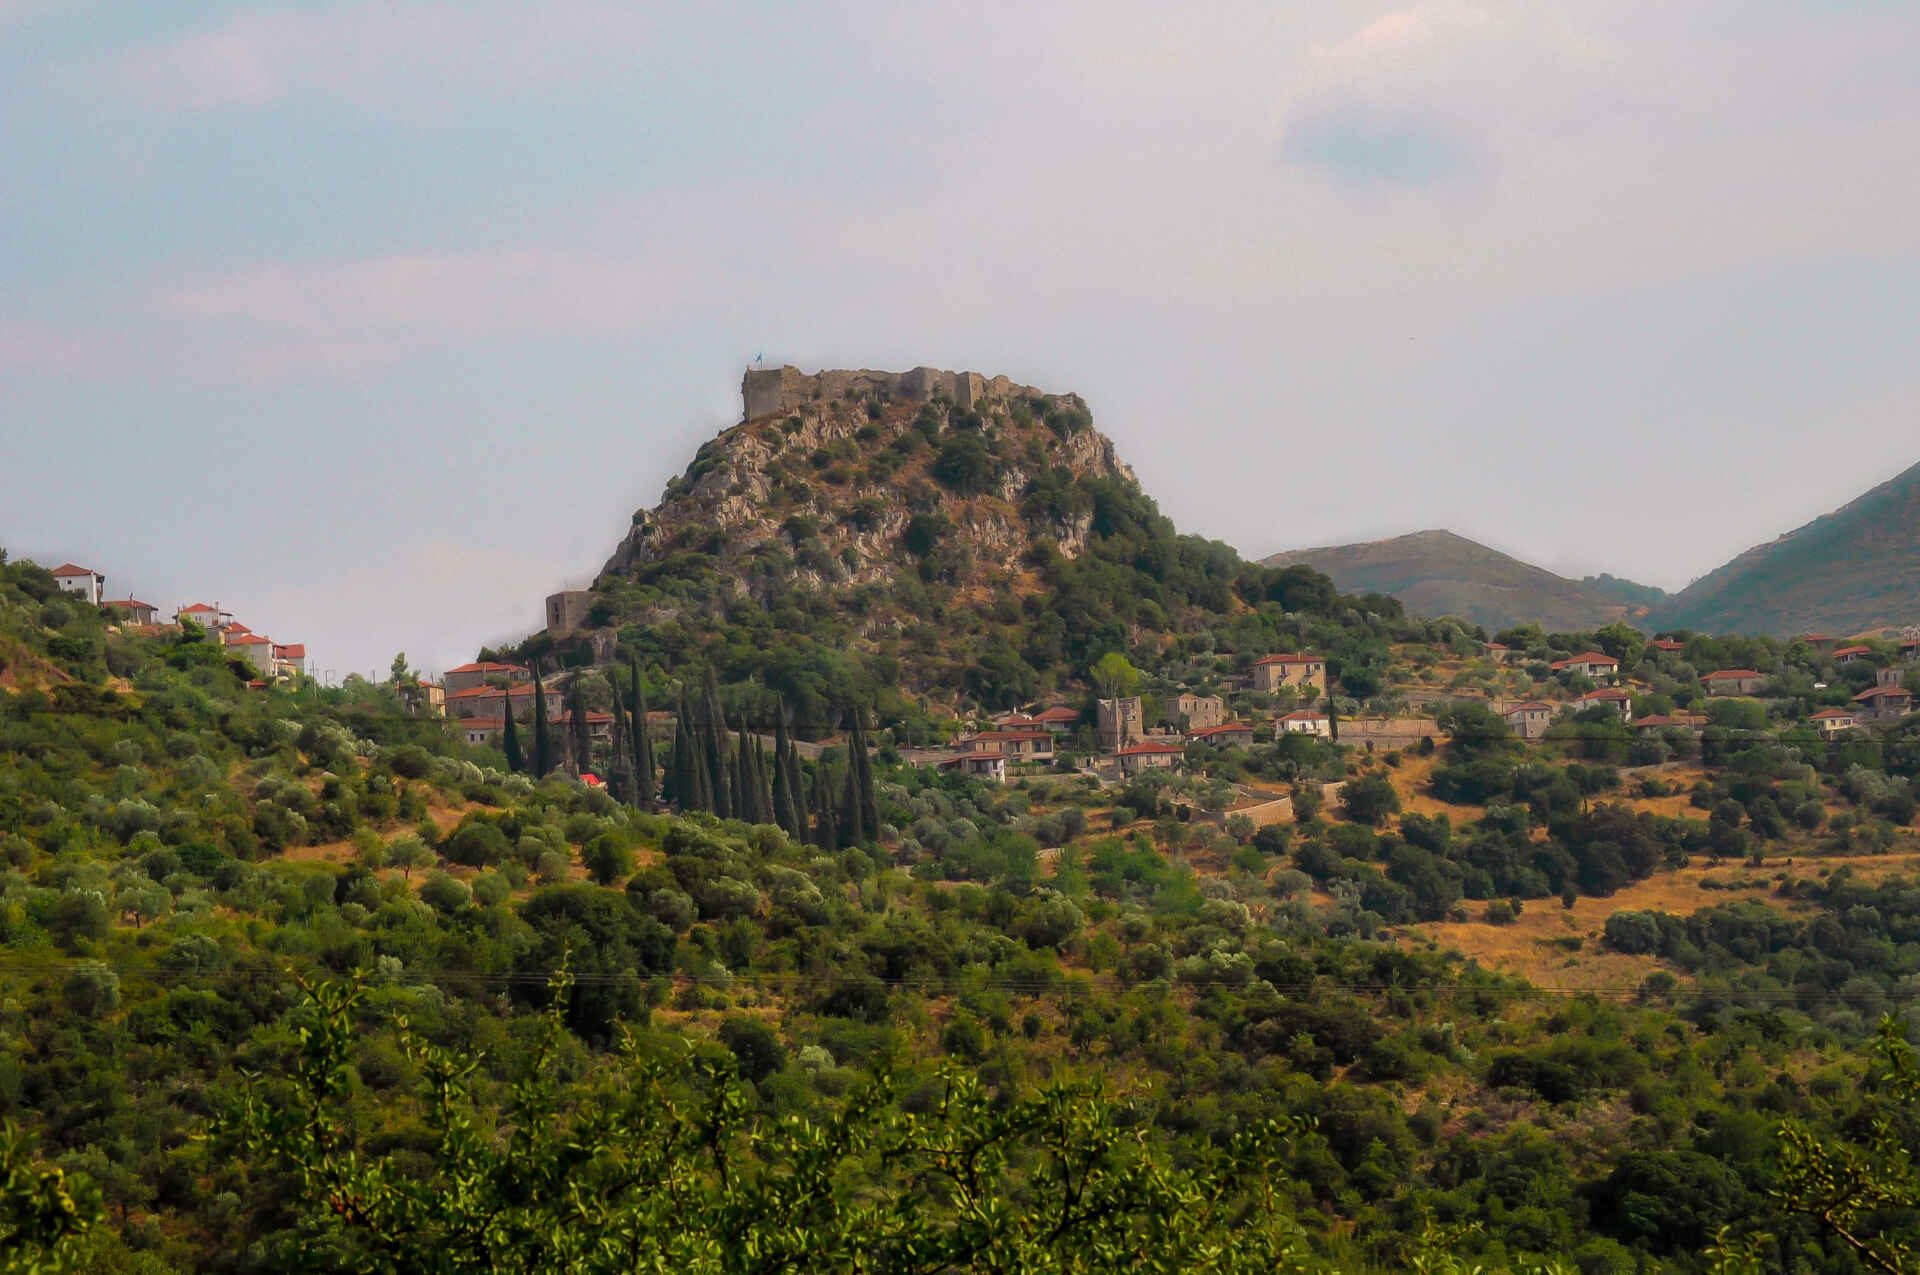 The Greek village of Karytaina as it appears high on a rock while driving in Arcadia.